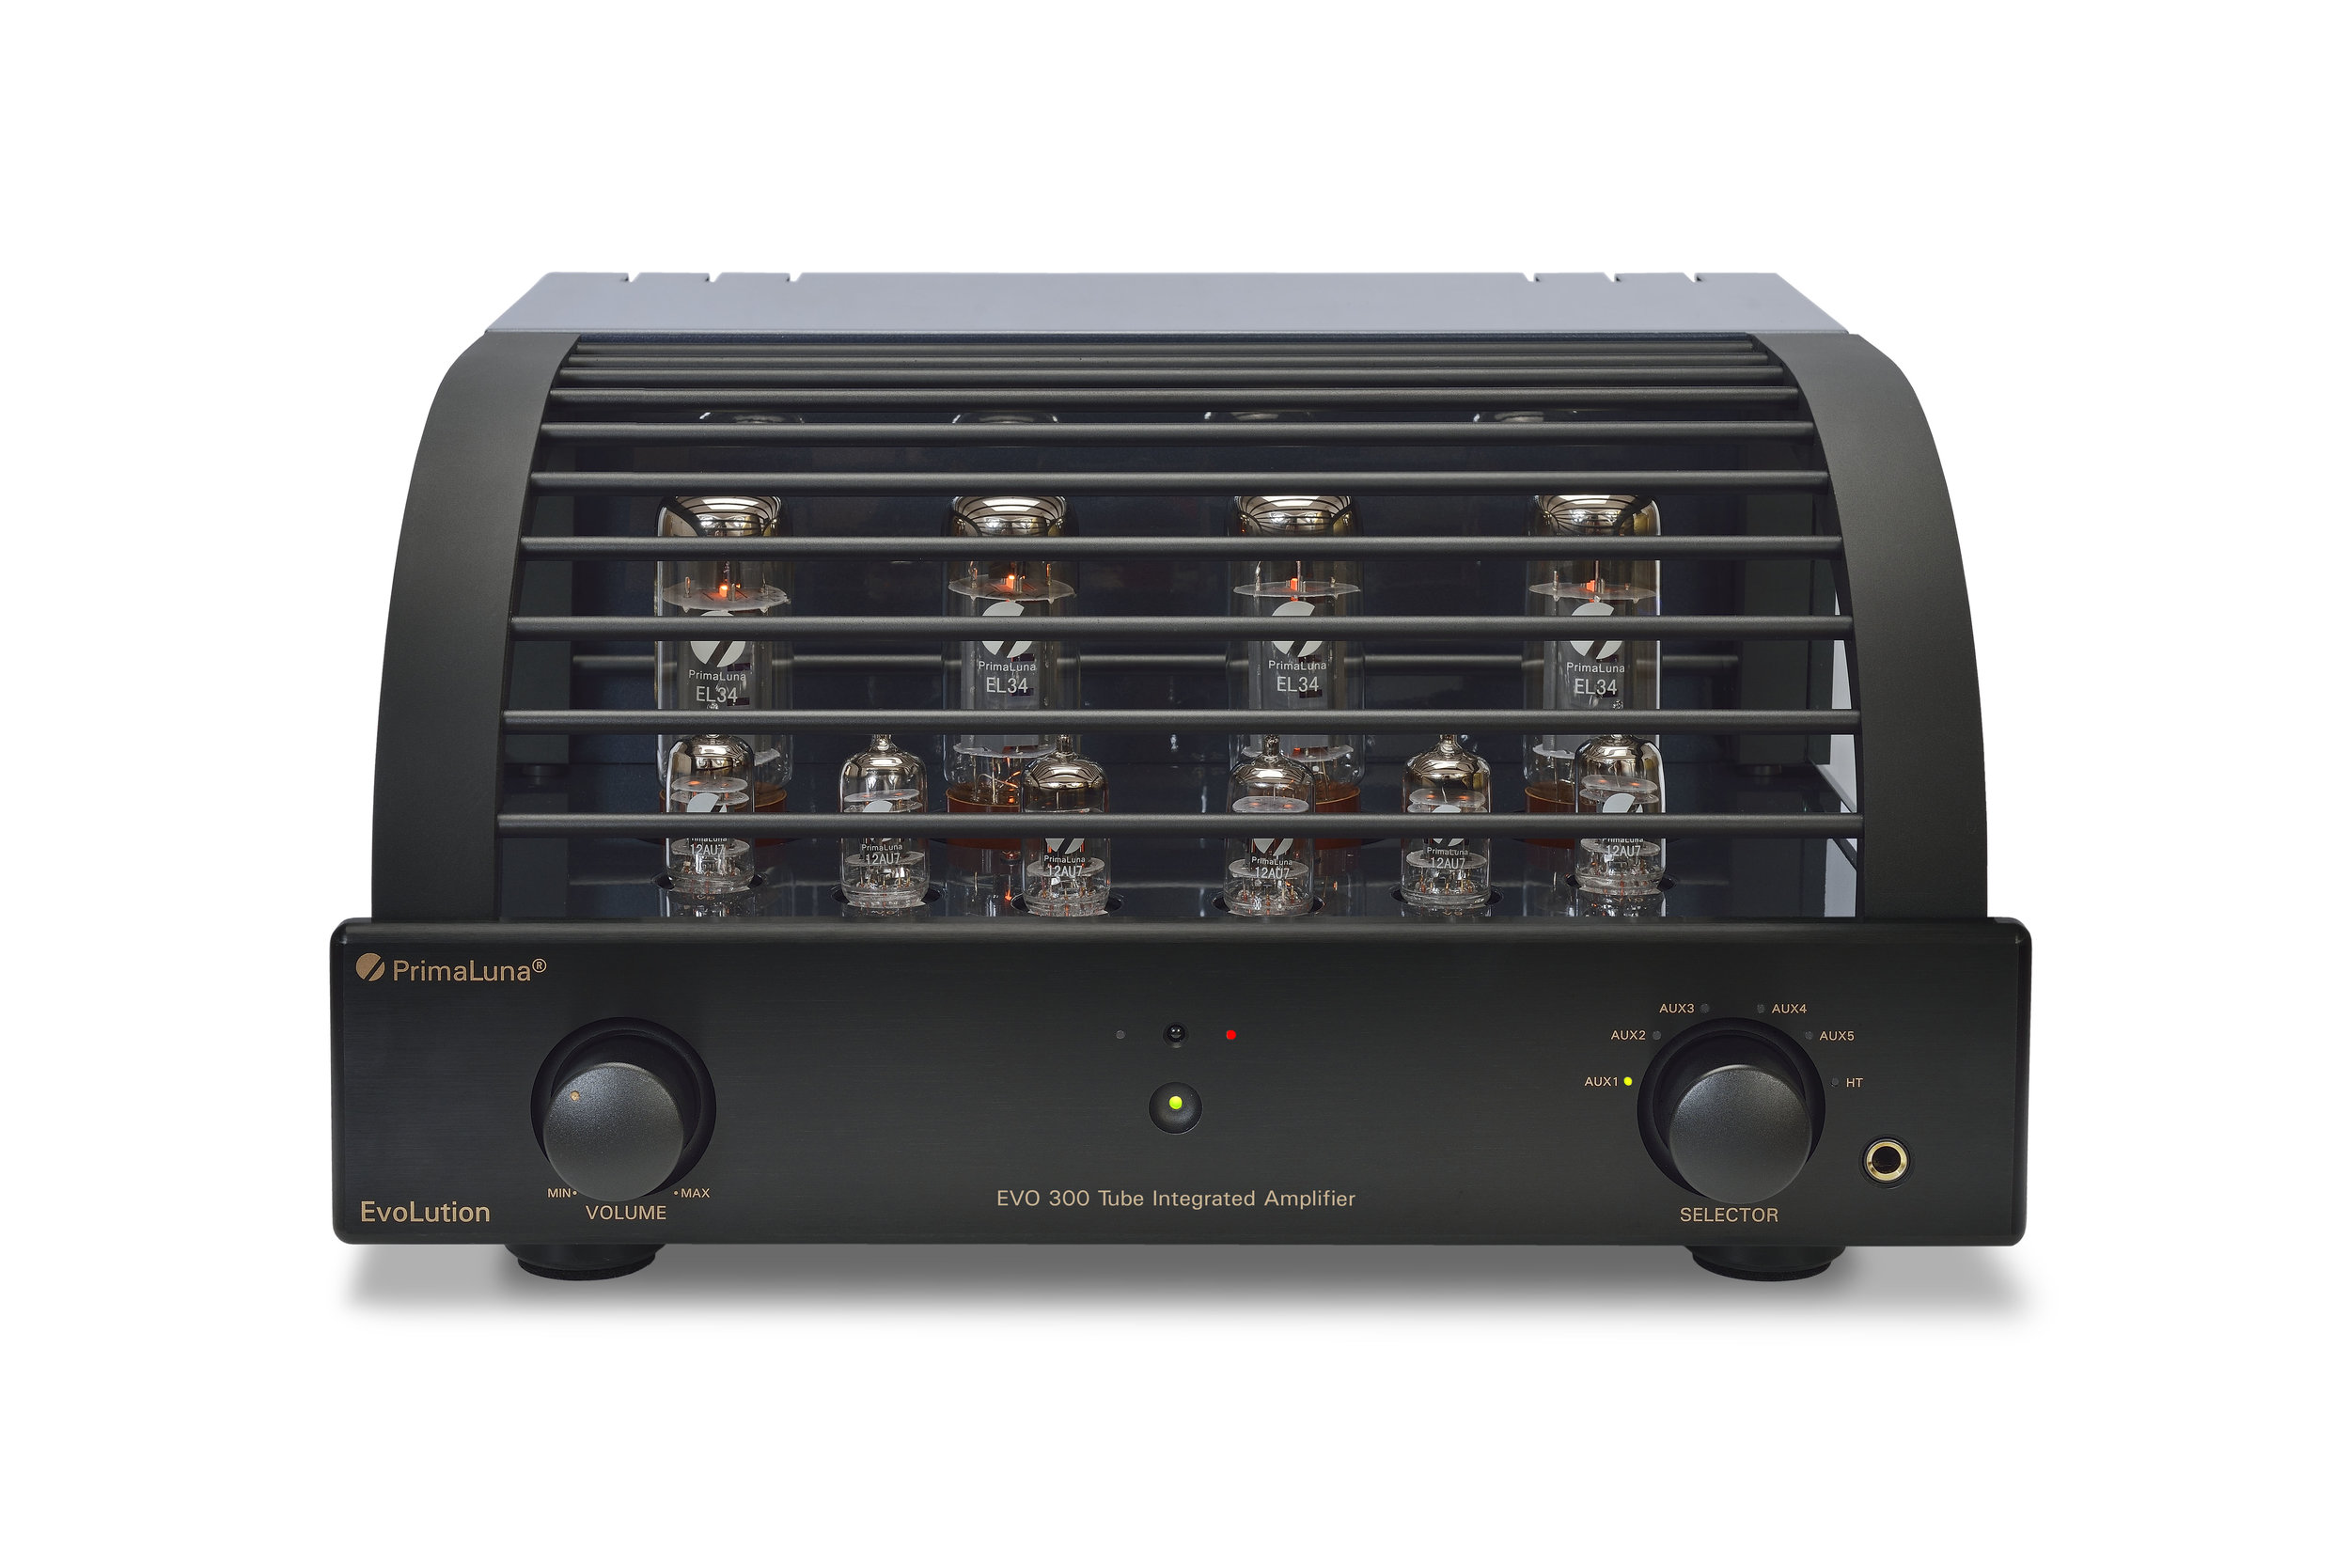 052b - PrimaLuna Evo 300 Tube Integrated Amplifier - black - front - white background - kopie.jpg